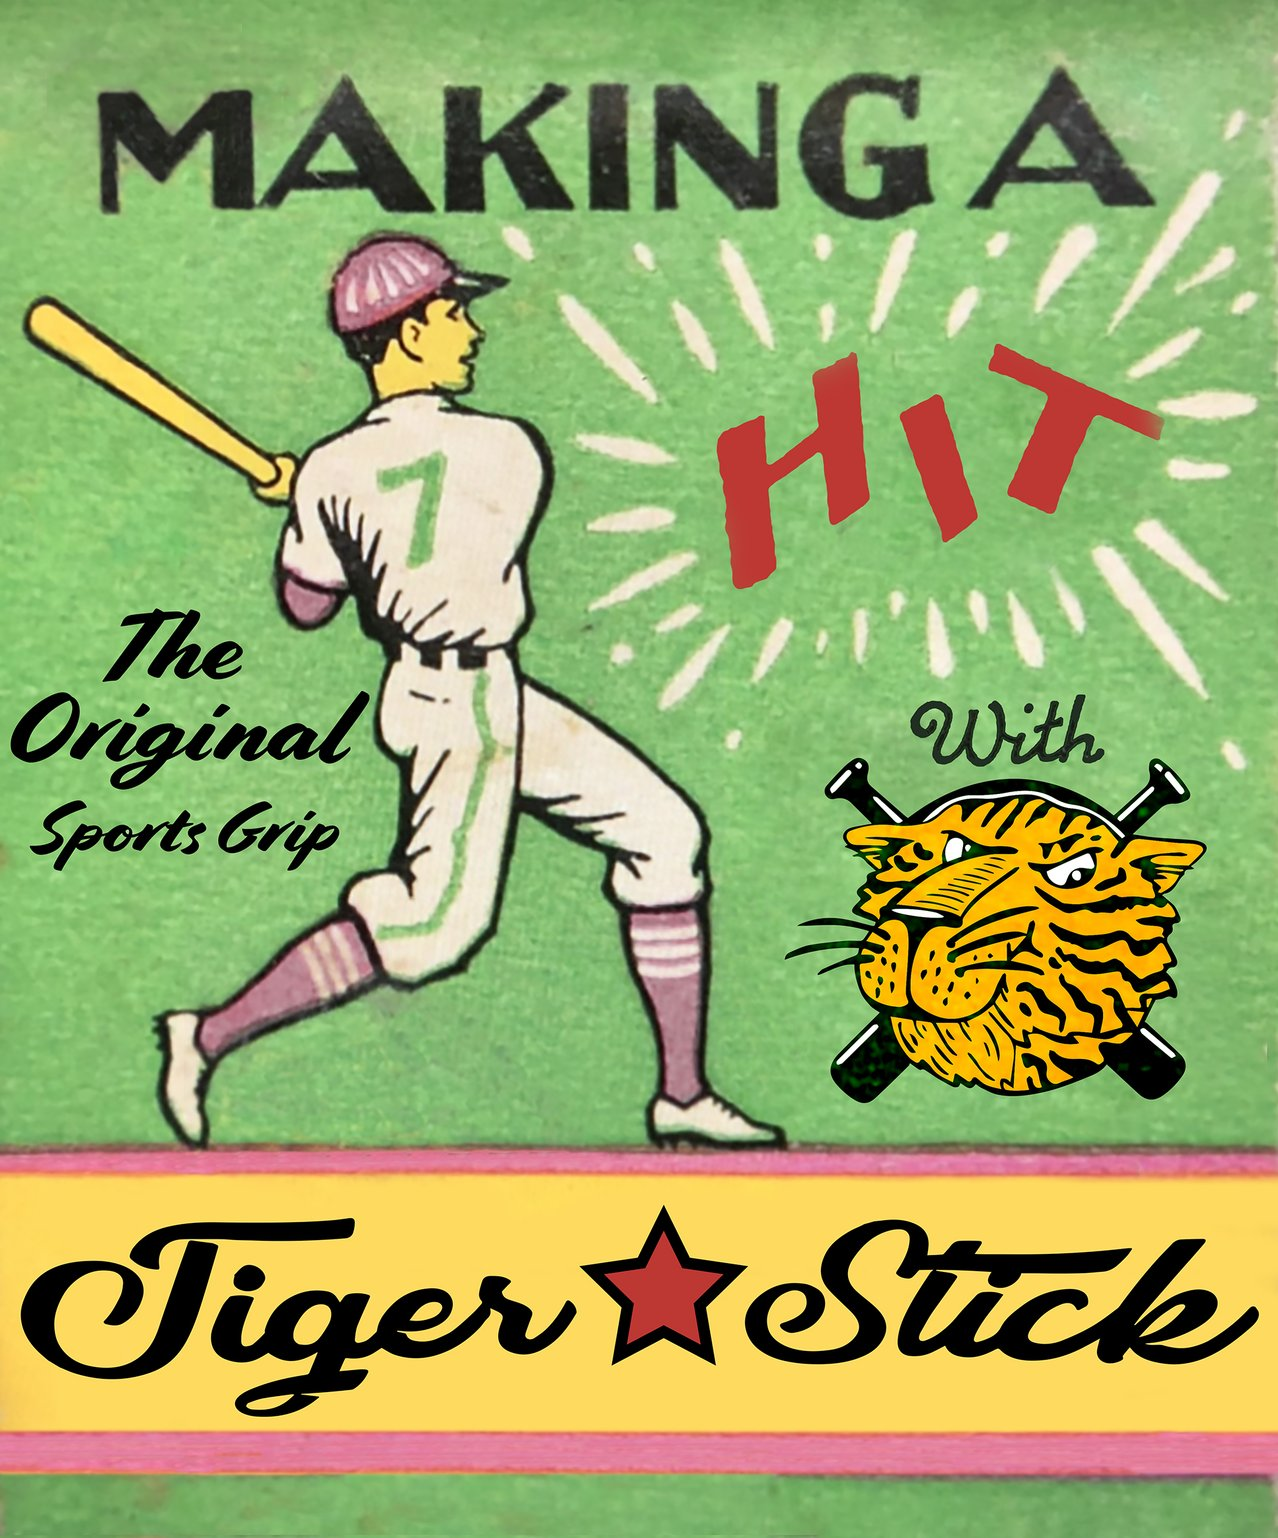 tiger stick bat wax baseball grip